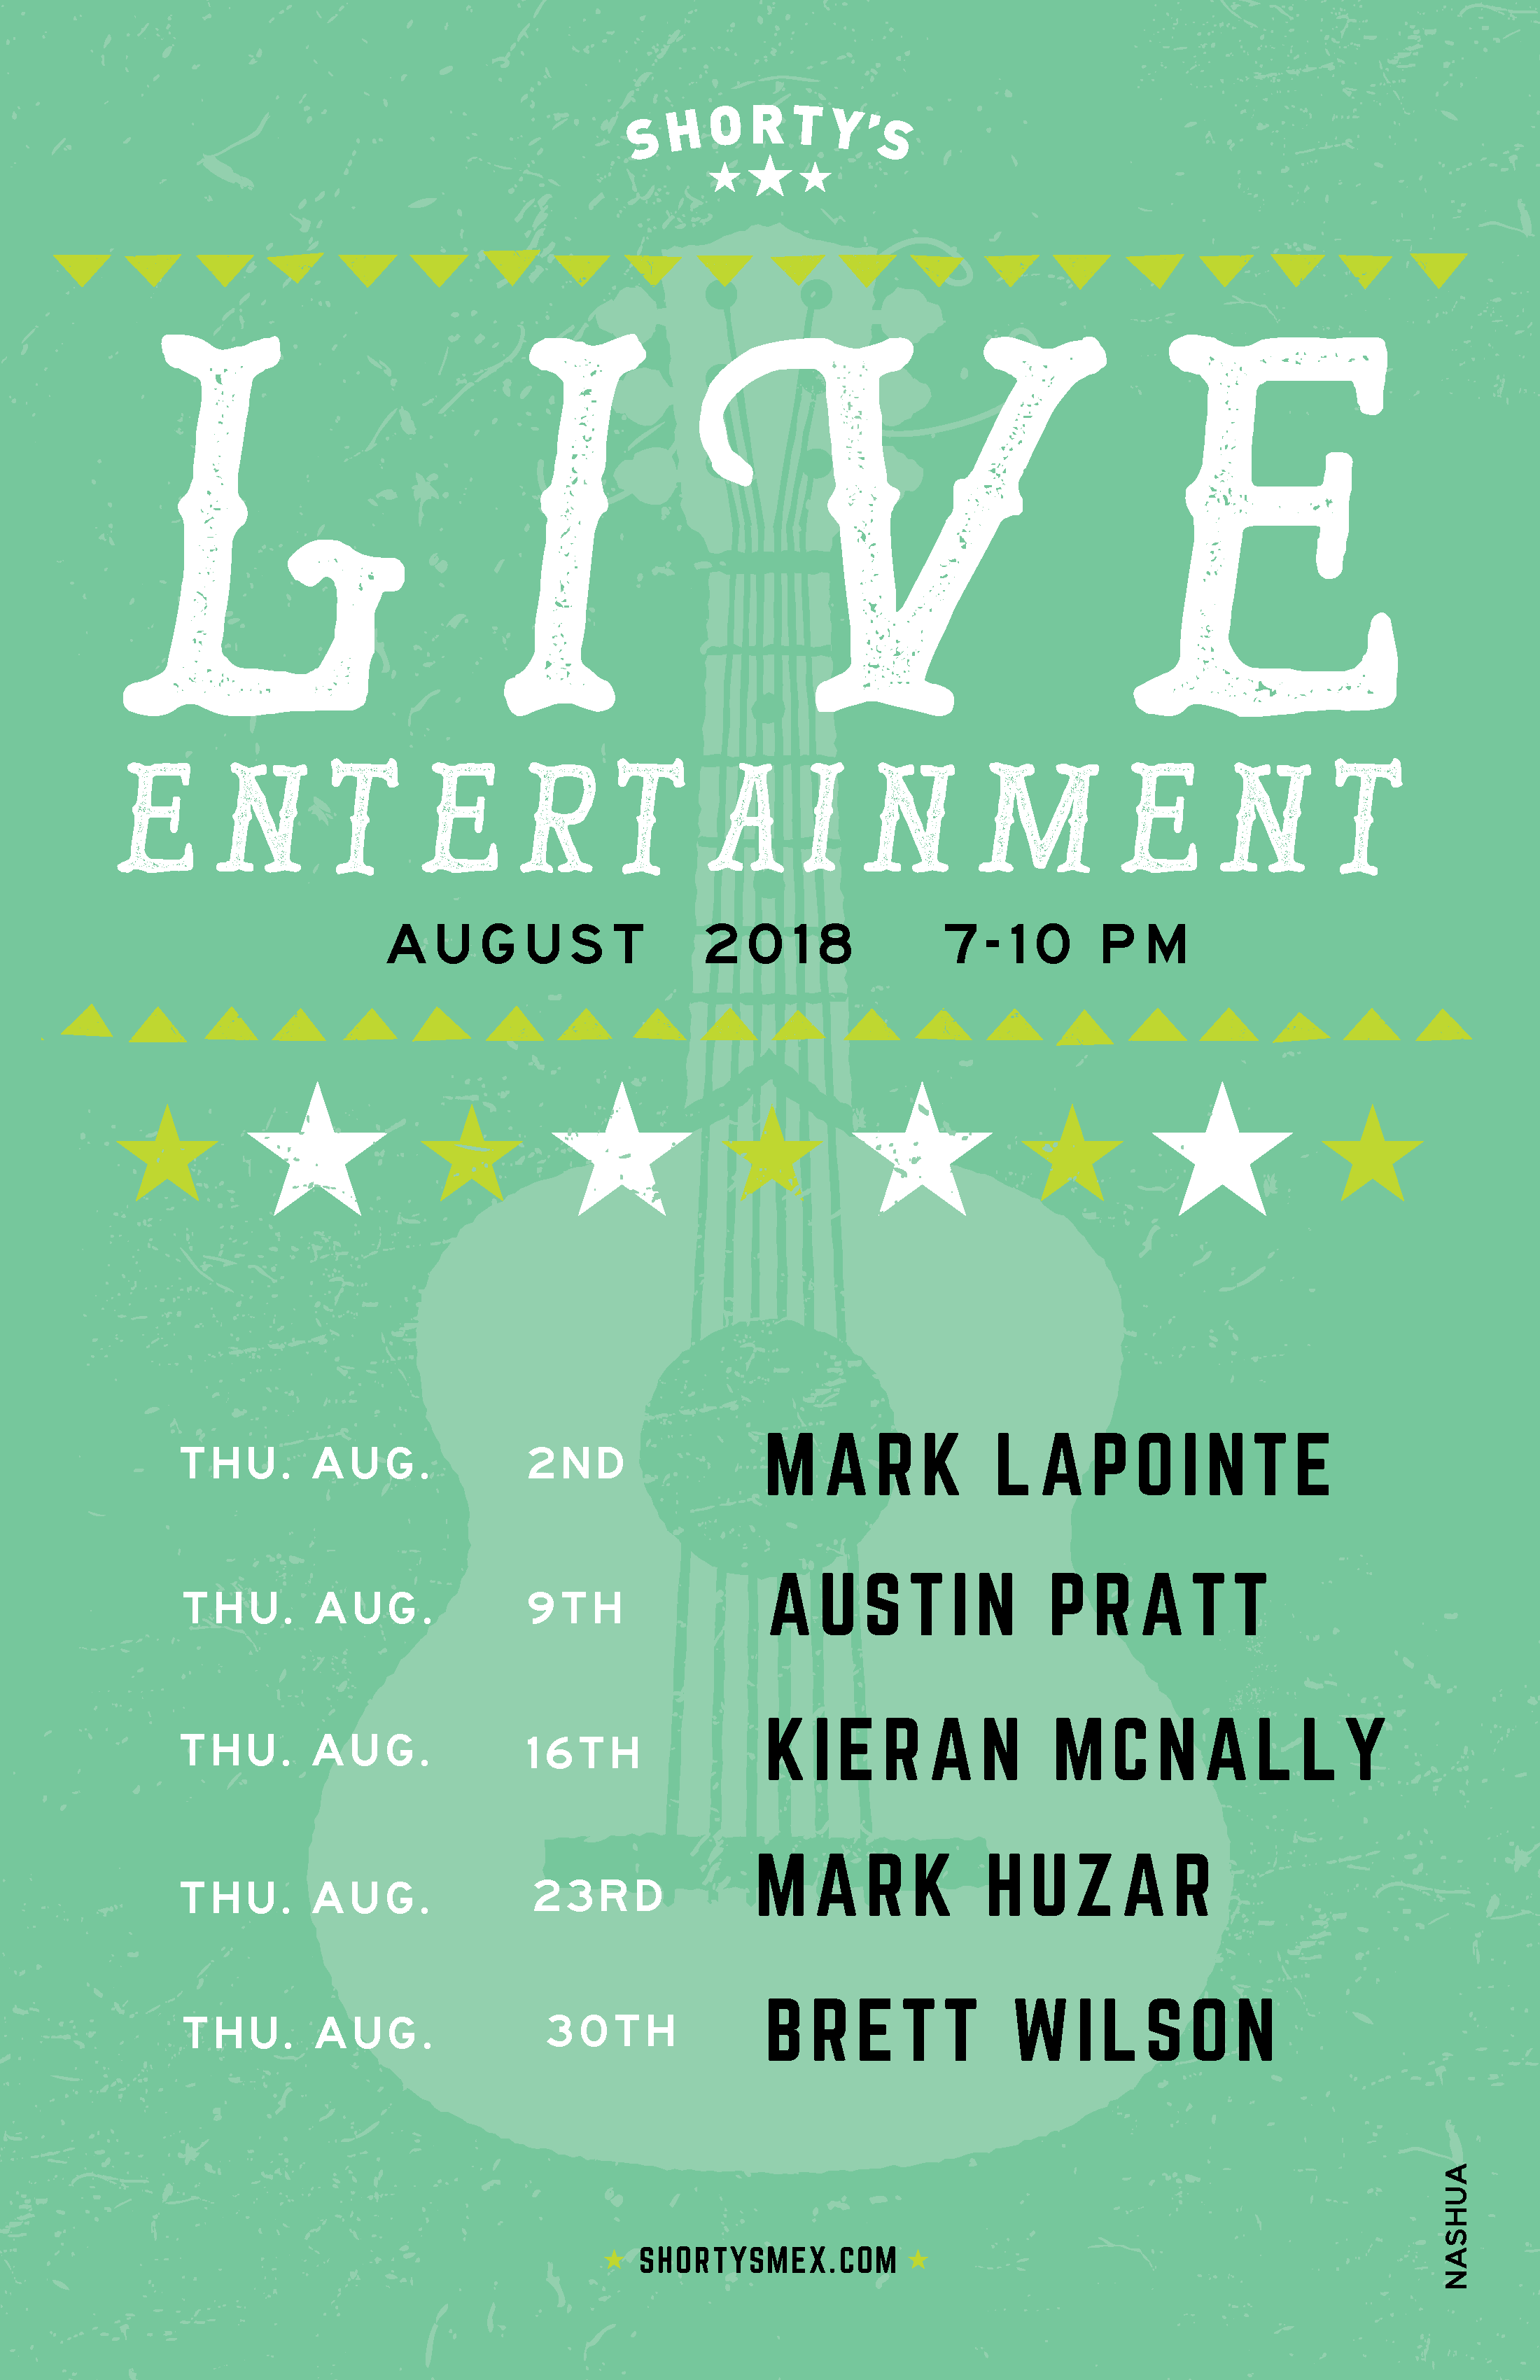 August Live Entertainment Schedule for Shorty's Nashua